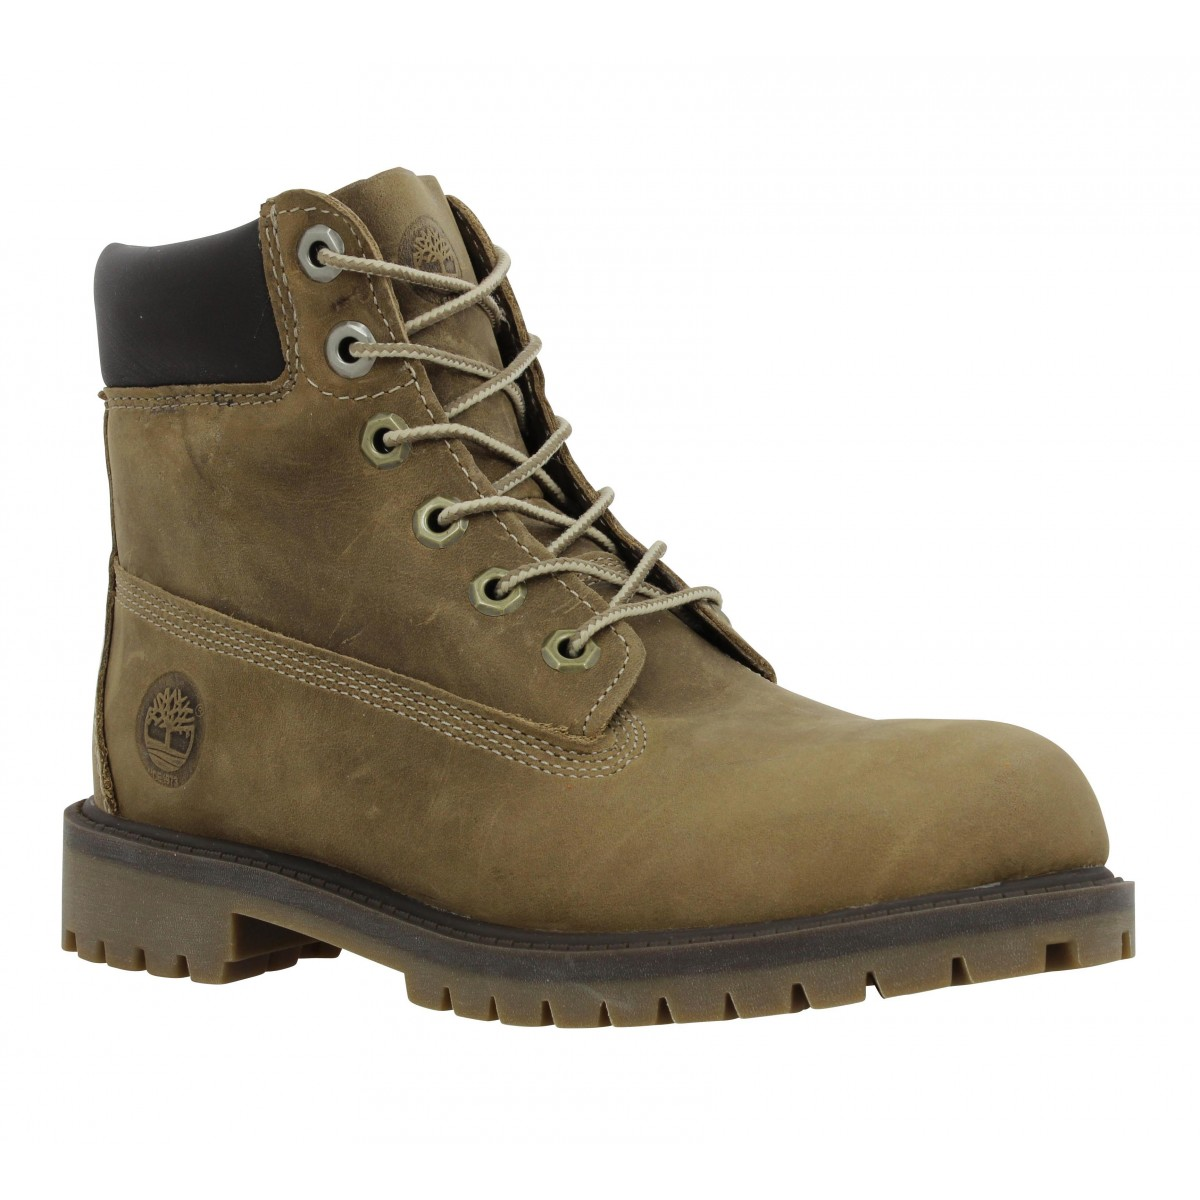 Bottines TIMBERLAND 6in Premium cuir gras Femme Taupe